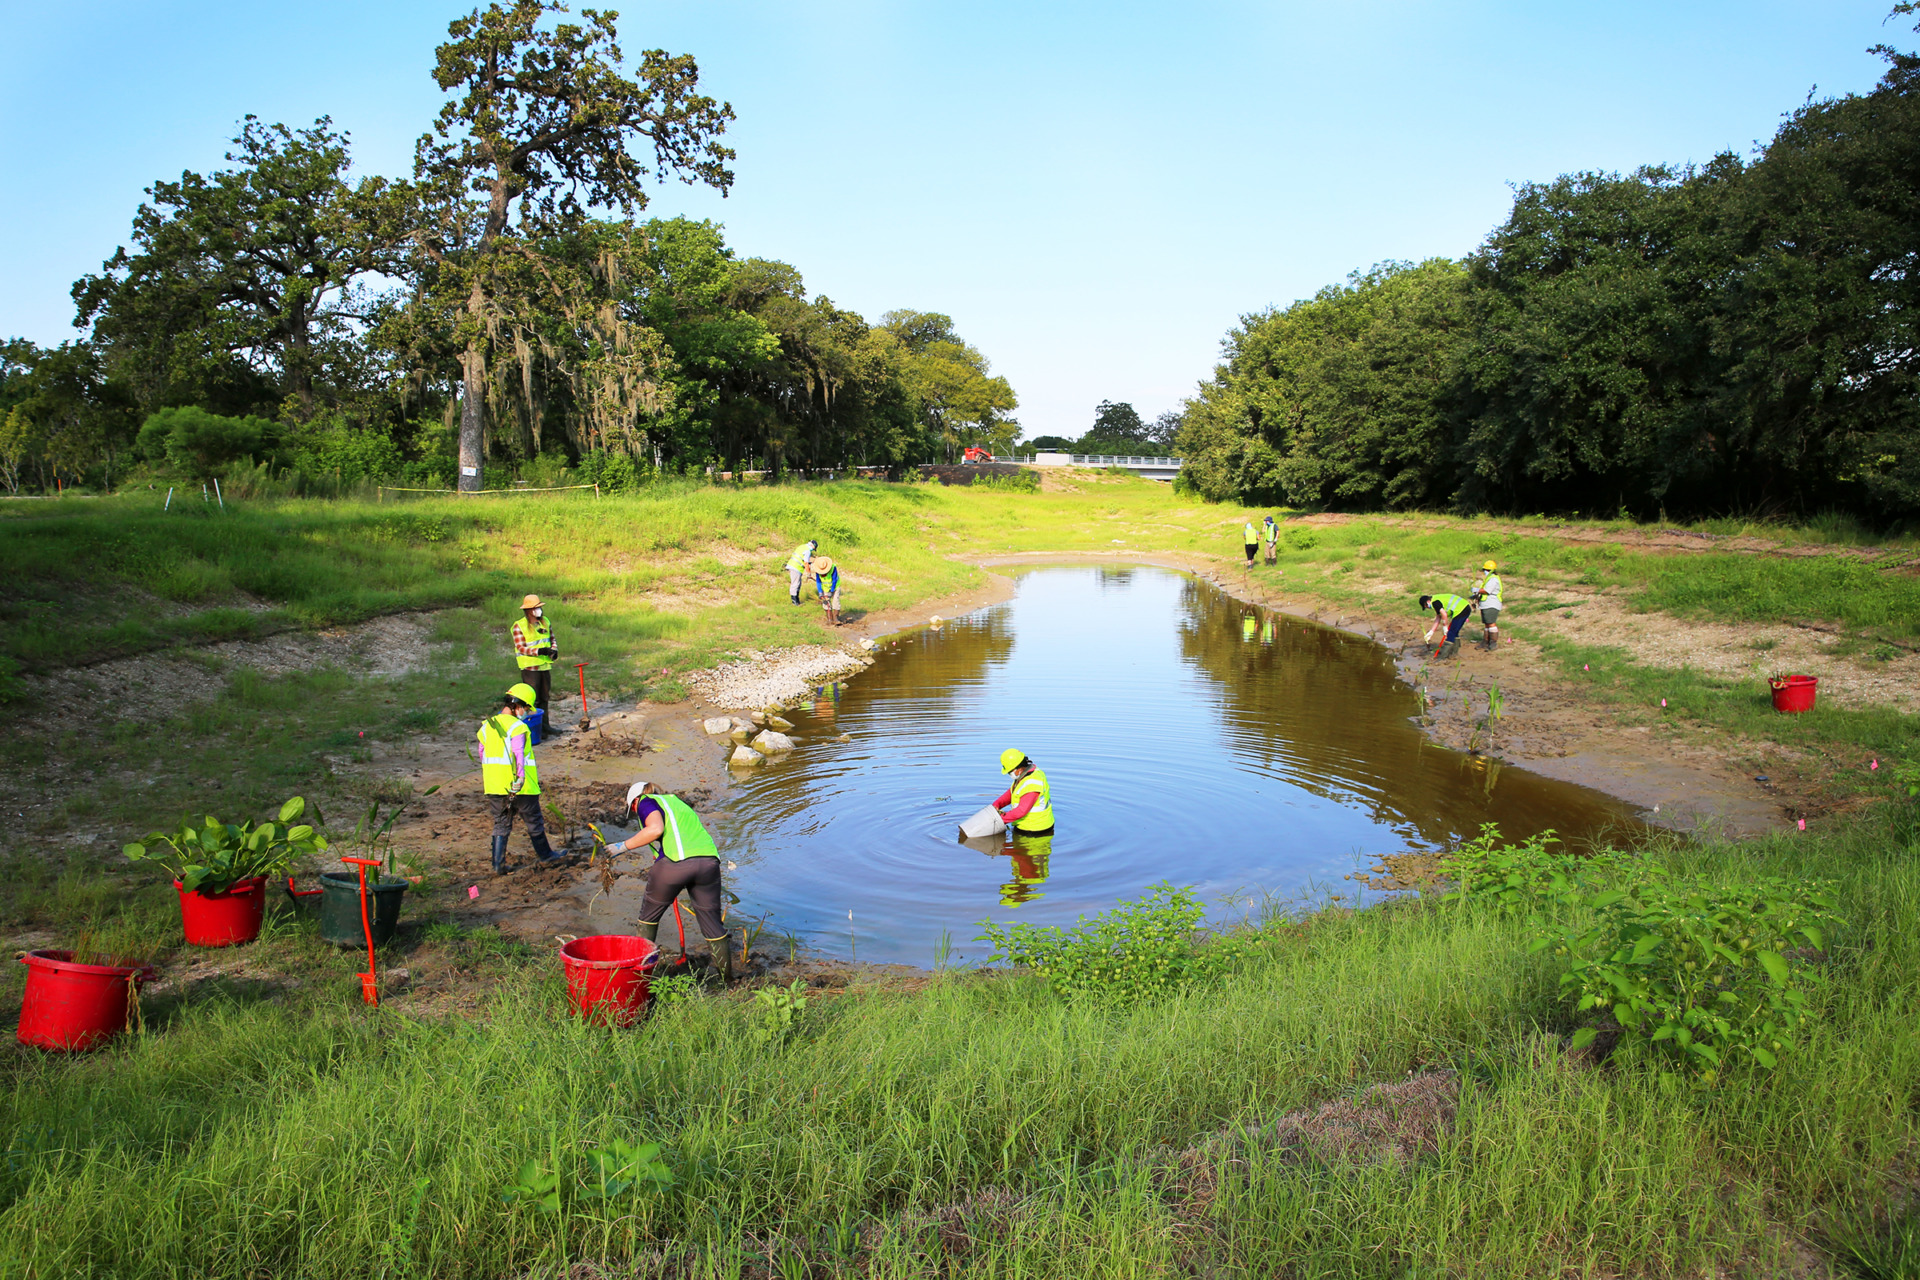 The Texas A&M AgriLife Extension Service recently began planting a 5-acre stormwater wetland area at the Houston Botanic Garden